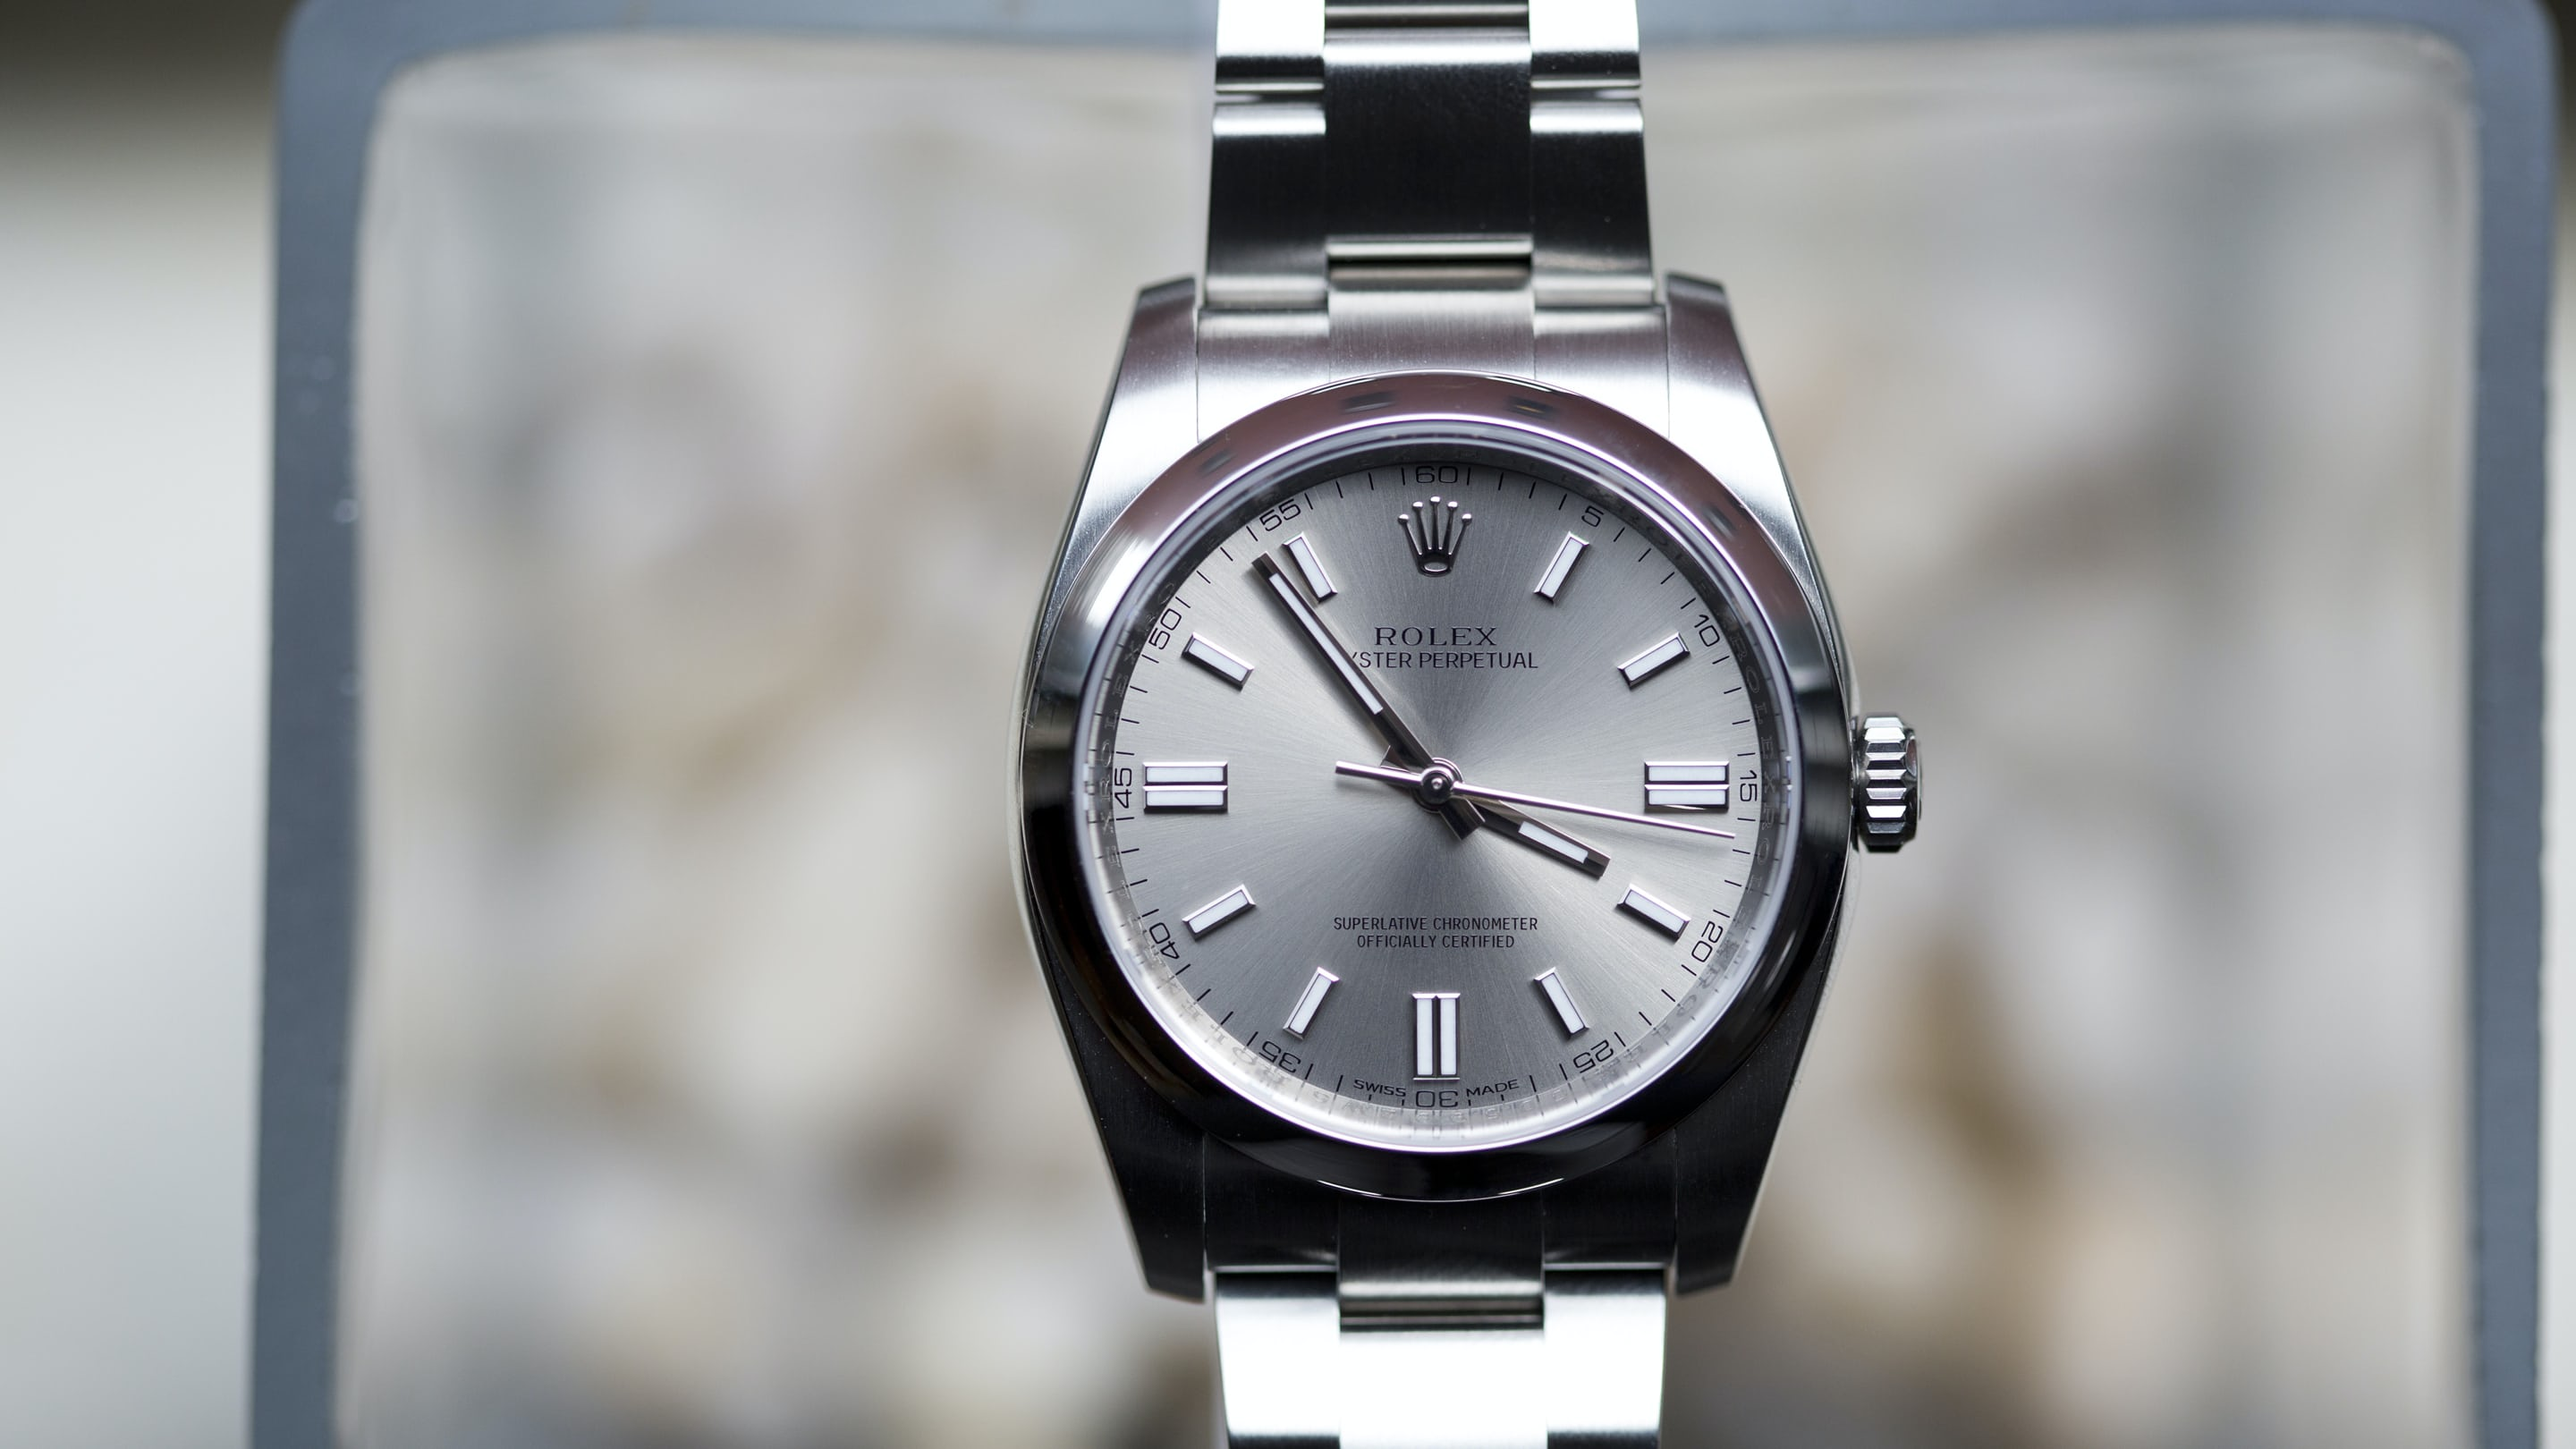 Hands On With The Rolex Oyster Perpetual In 36 Mm Hodinkee